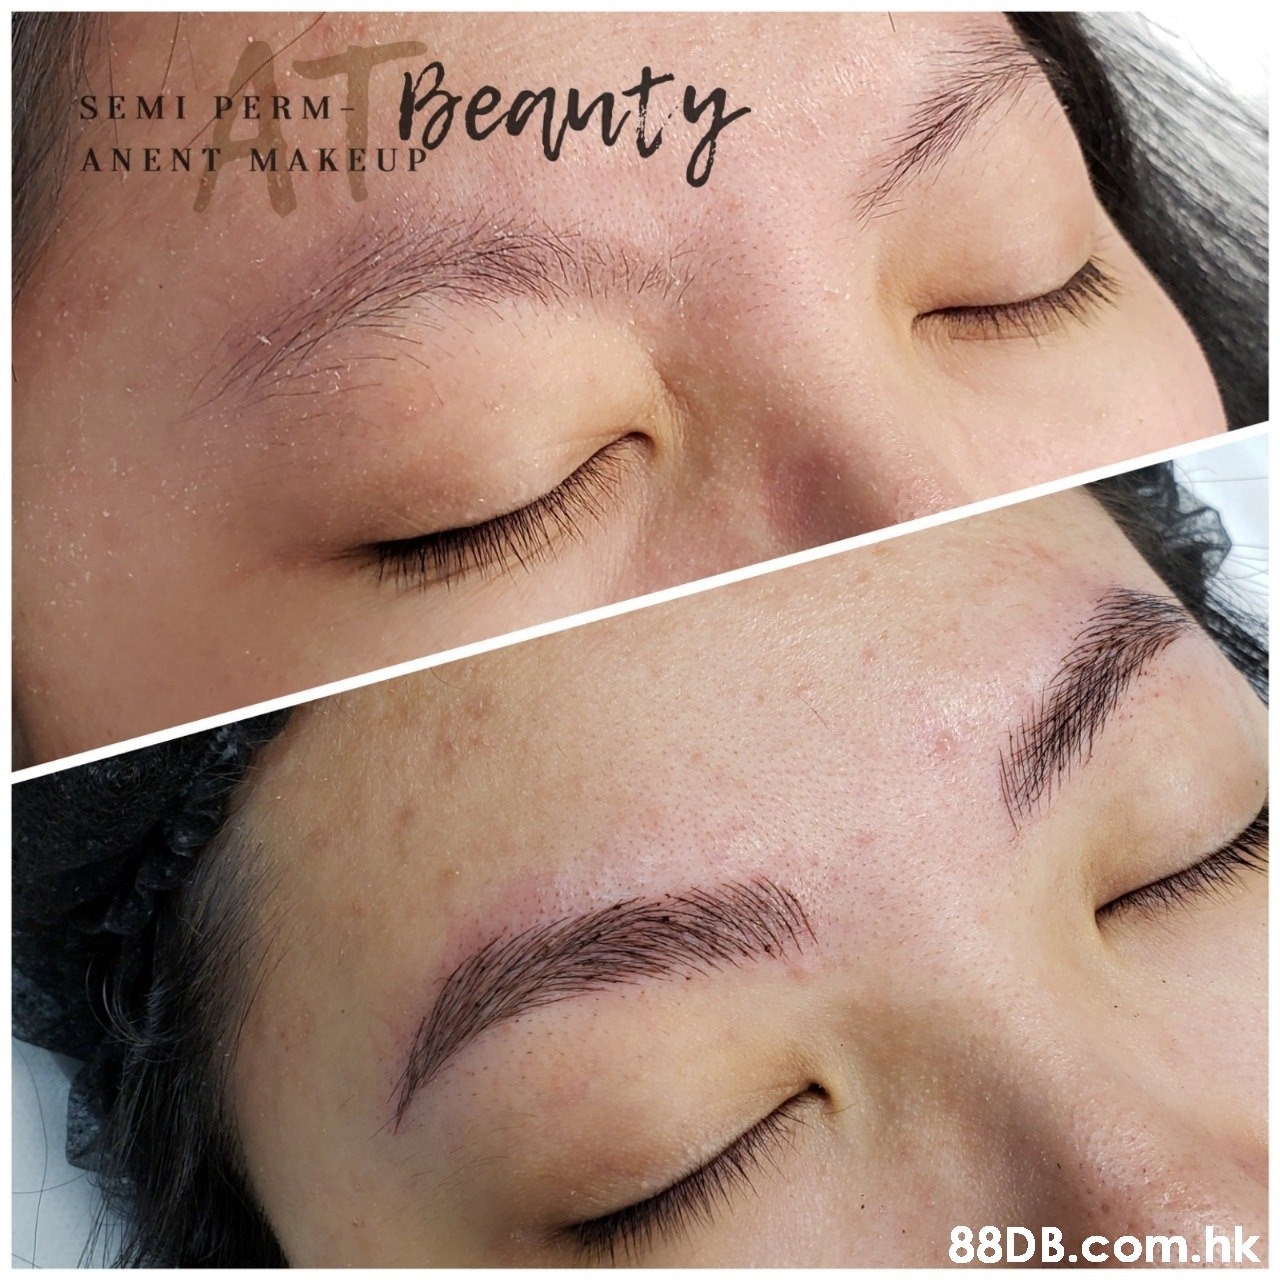 Pennty SEMI PERM ANENT MAKEUP .hk  Eyebrow,Face,Skin,Forehead,Cheek